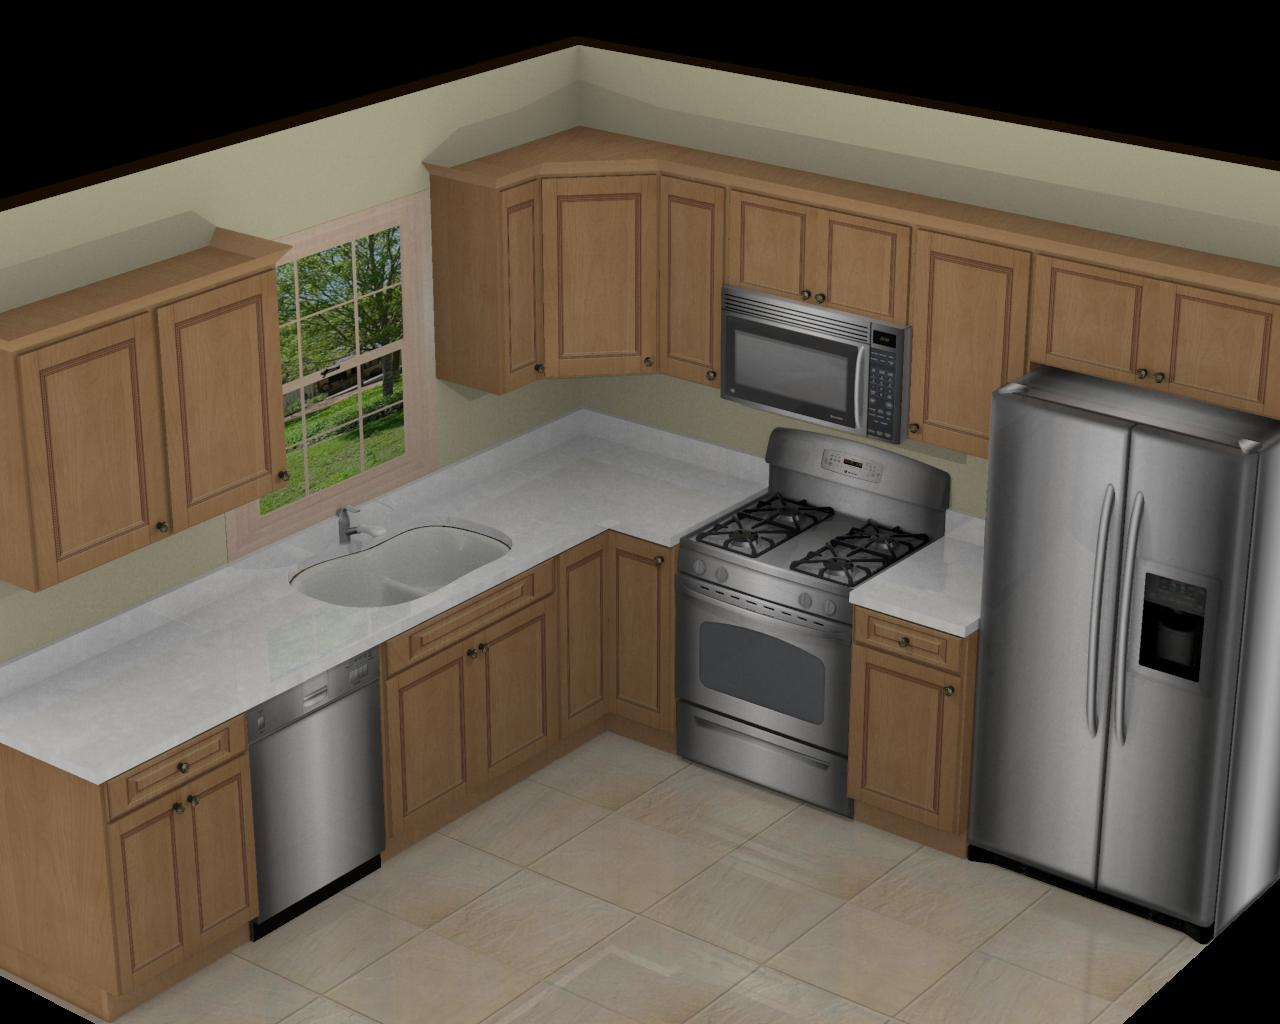 Foundation dezin decor 3d kitchen model design for Kitchen design with